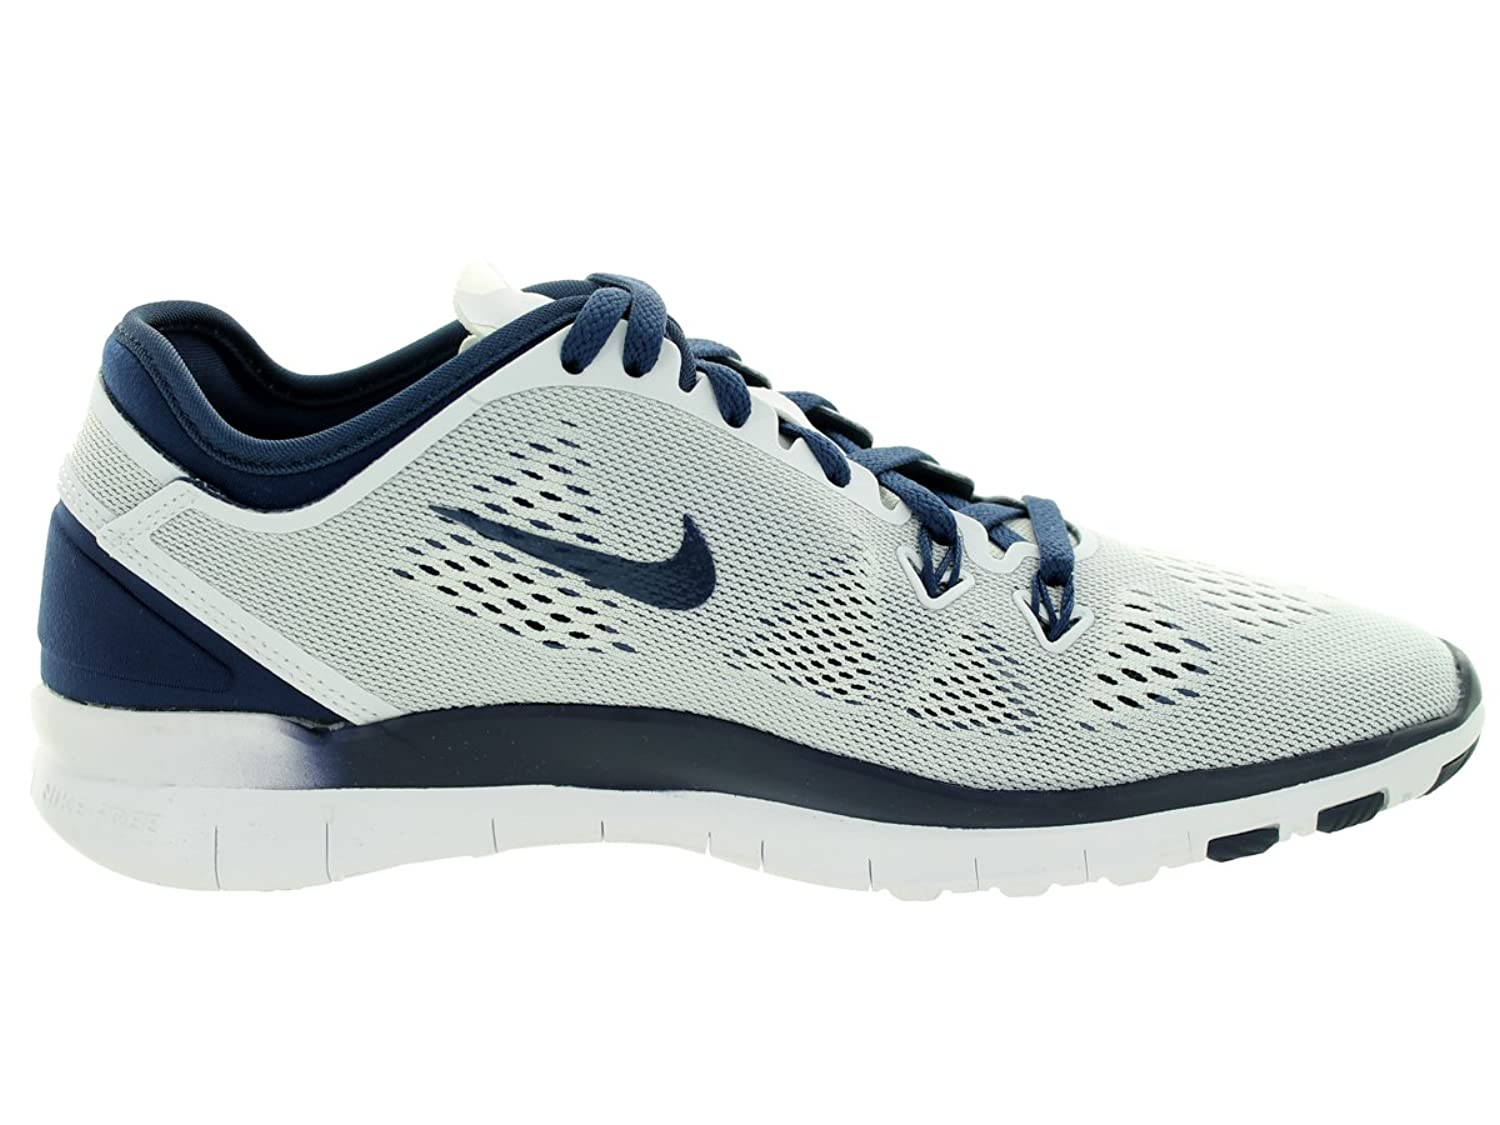 promo code nike free 5.0 tr fit 3 hombres chinese rojo royal